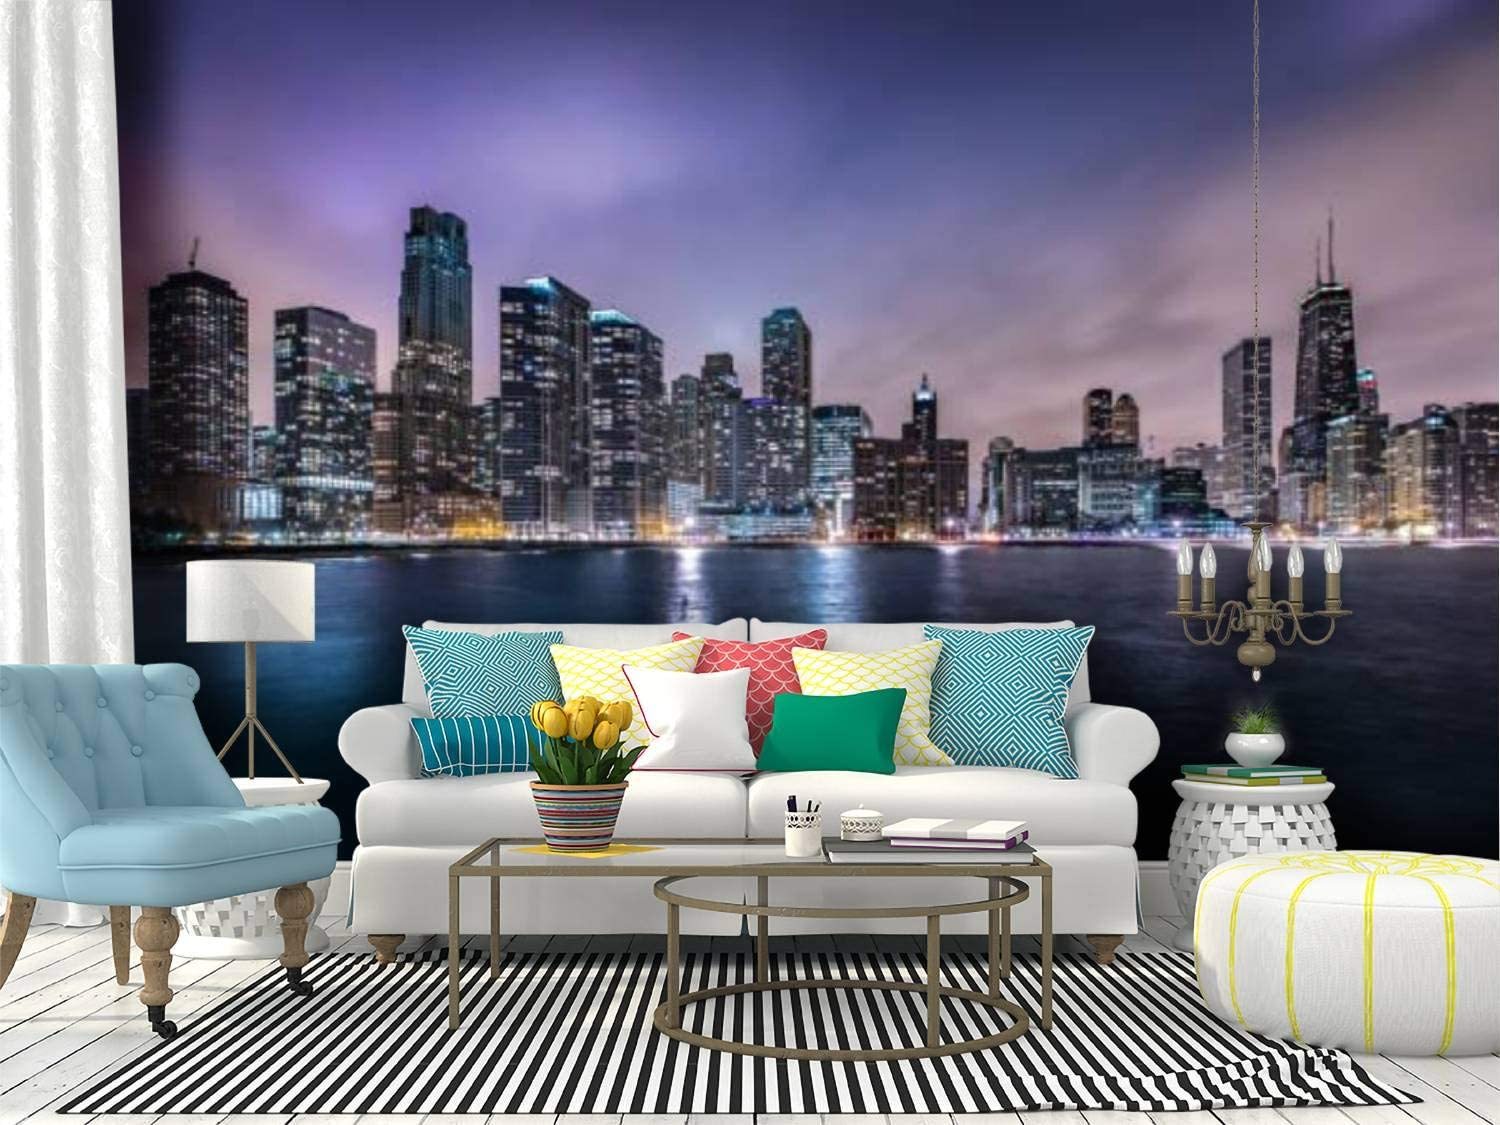 chicago skyline and lake michigan at night blue purple skys and Canvas Print Wallpaper Wall Mural Self Adhesive Peel & Stick Wallpaper Home Craft Wall Decal Wall Poster Sticker for Living Room